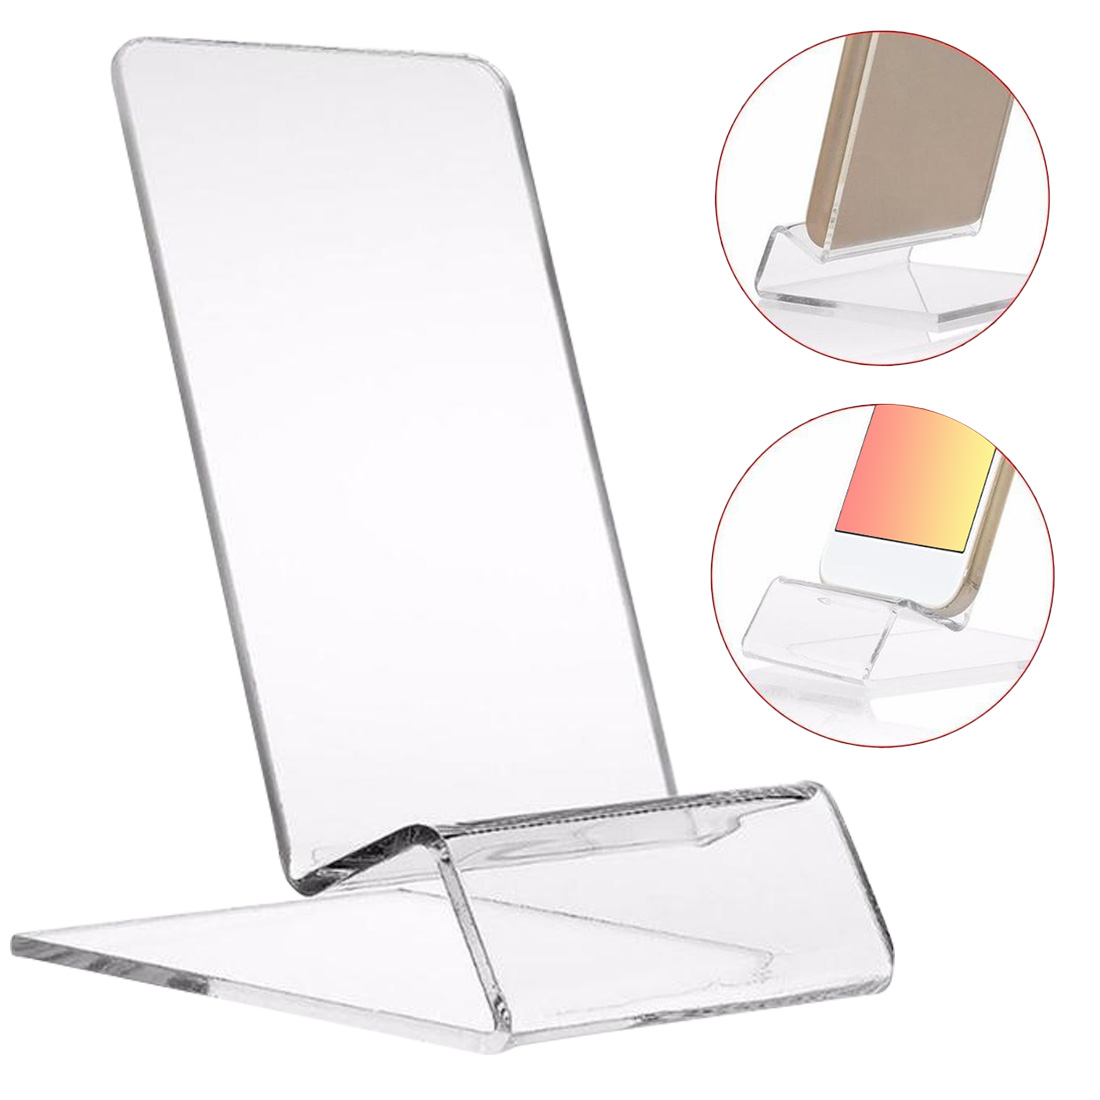 Clear Acrylic Plexiglass Phone Mount Holder Mini Portable Display Rack Stand For Cell Phone Display